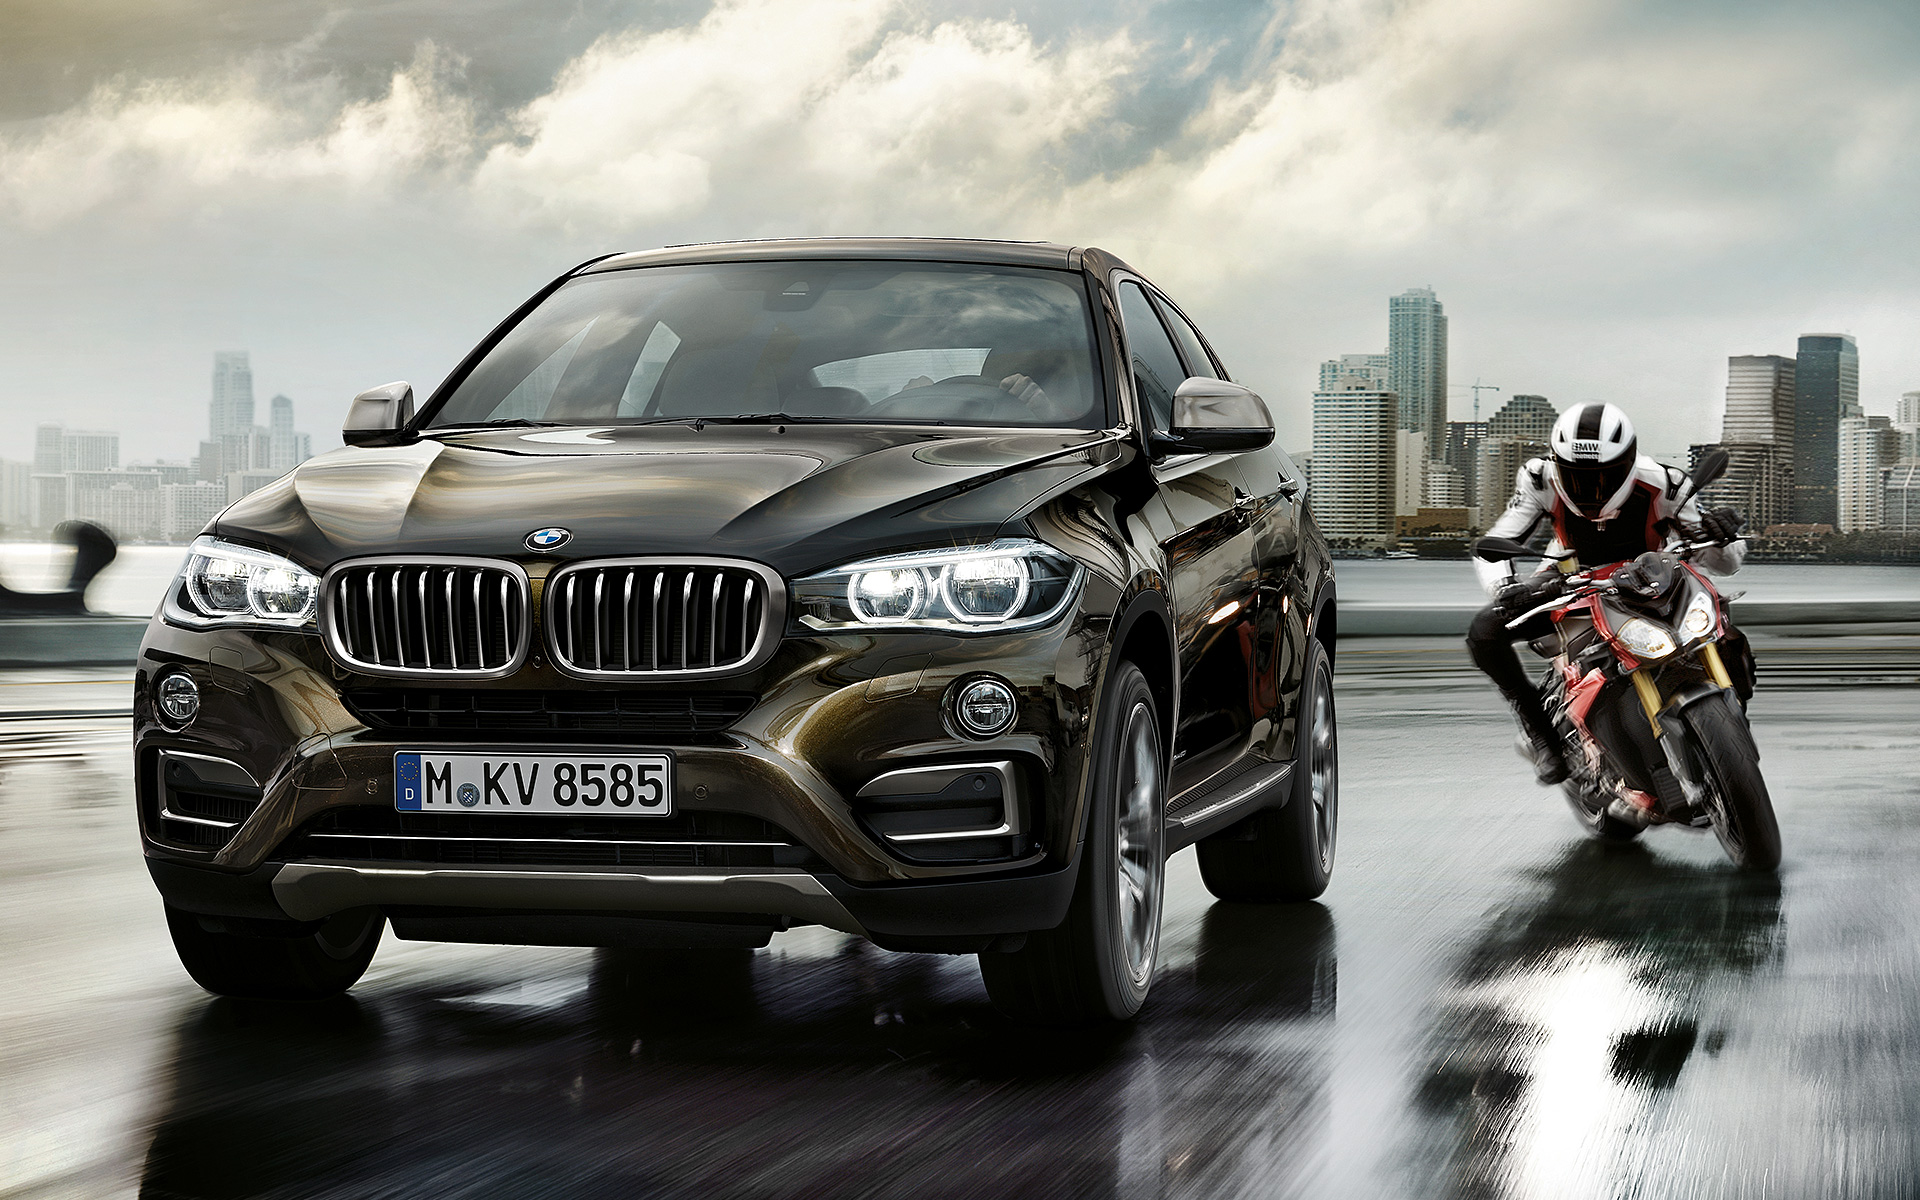 BMW-X6-cartec-group-5.jpg